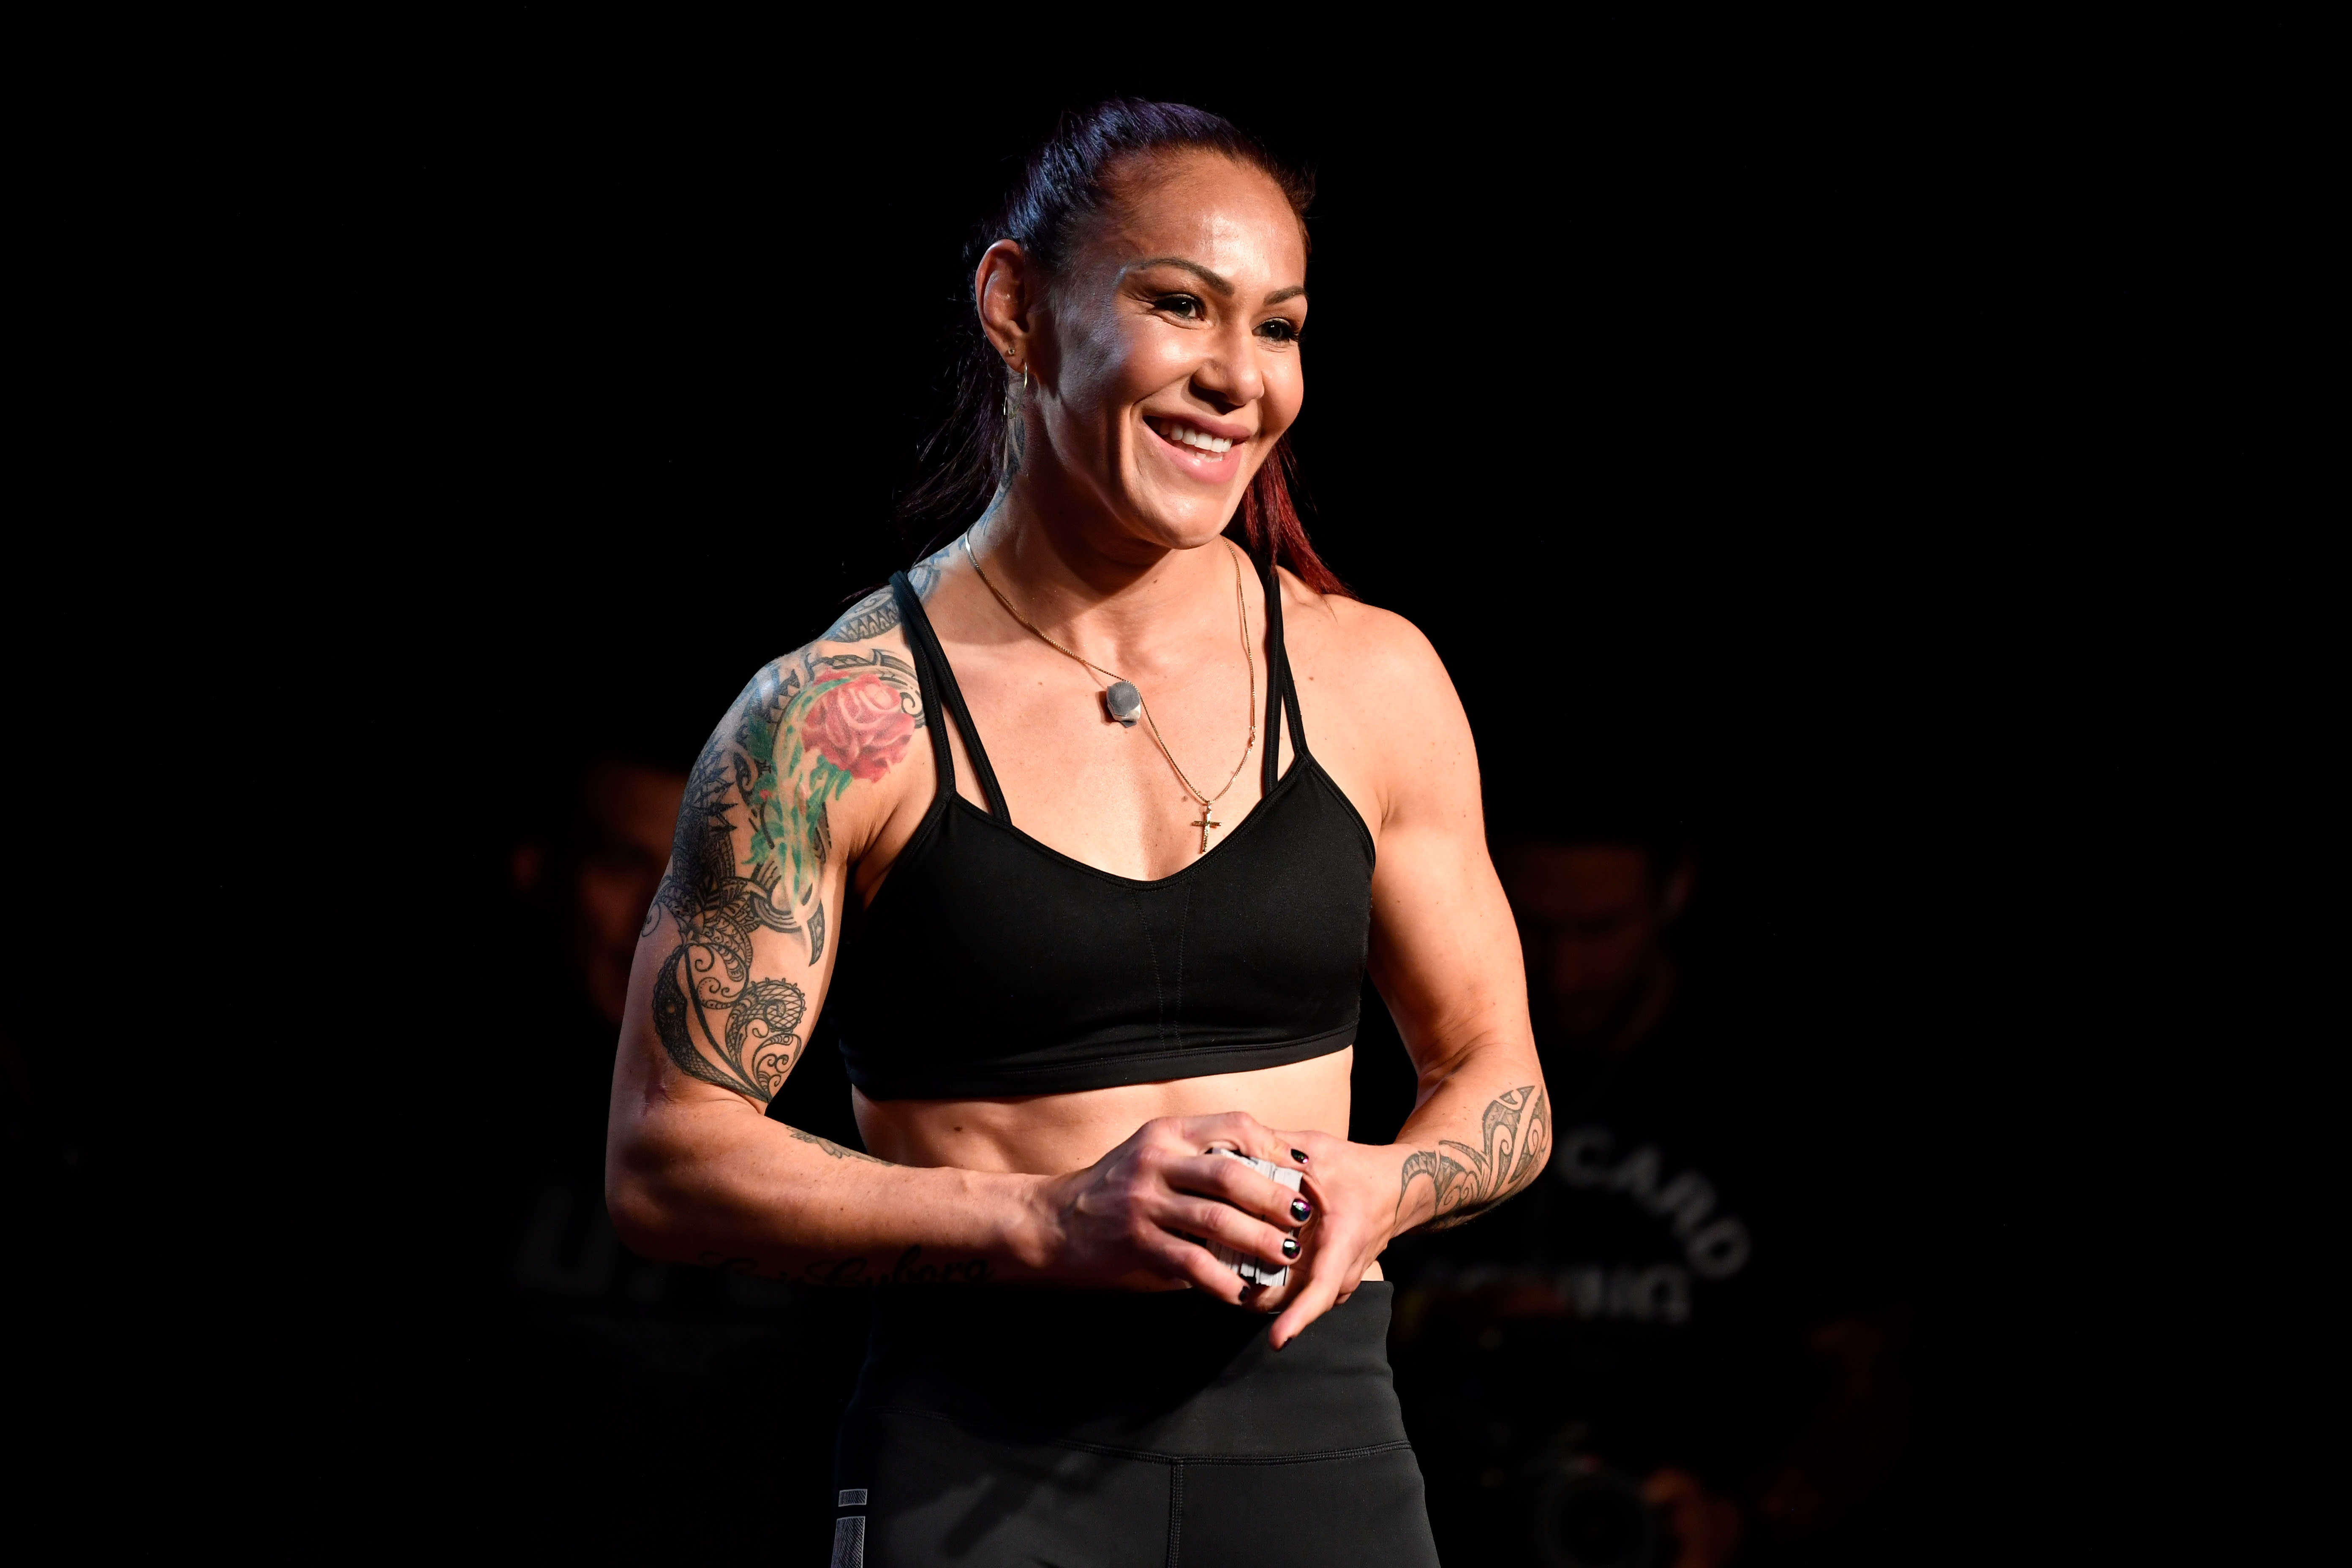 Cris Cyborg Signs With Bellator After Ugly Ufc Exit